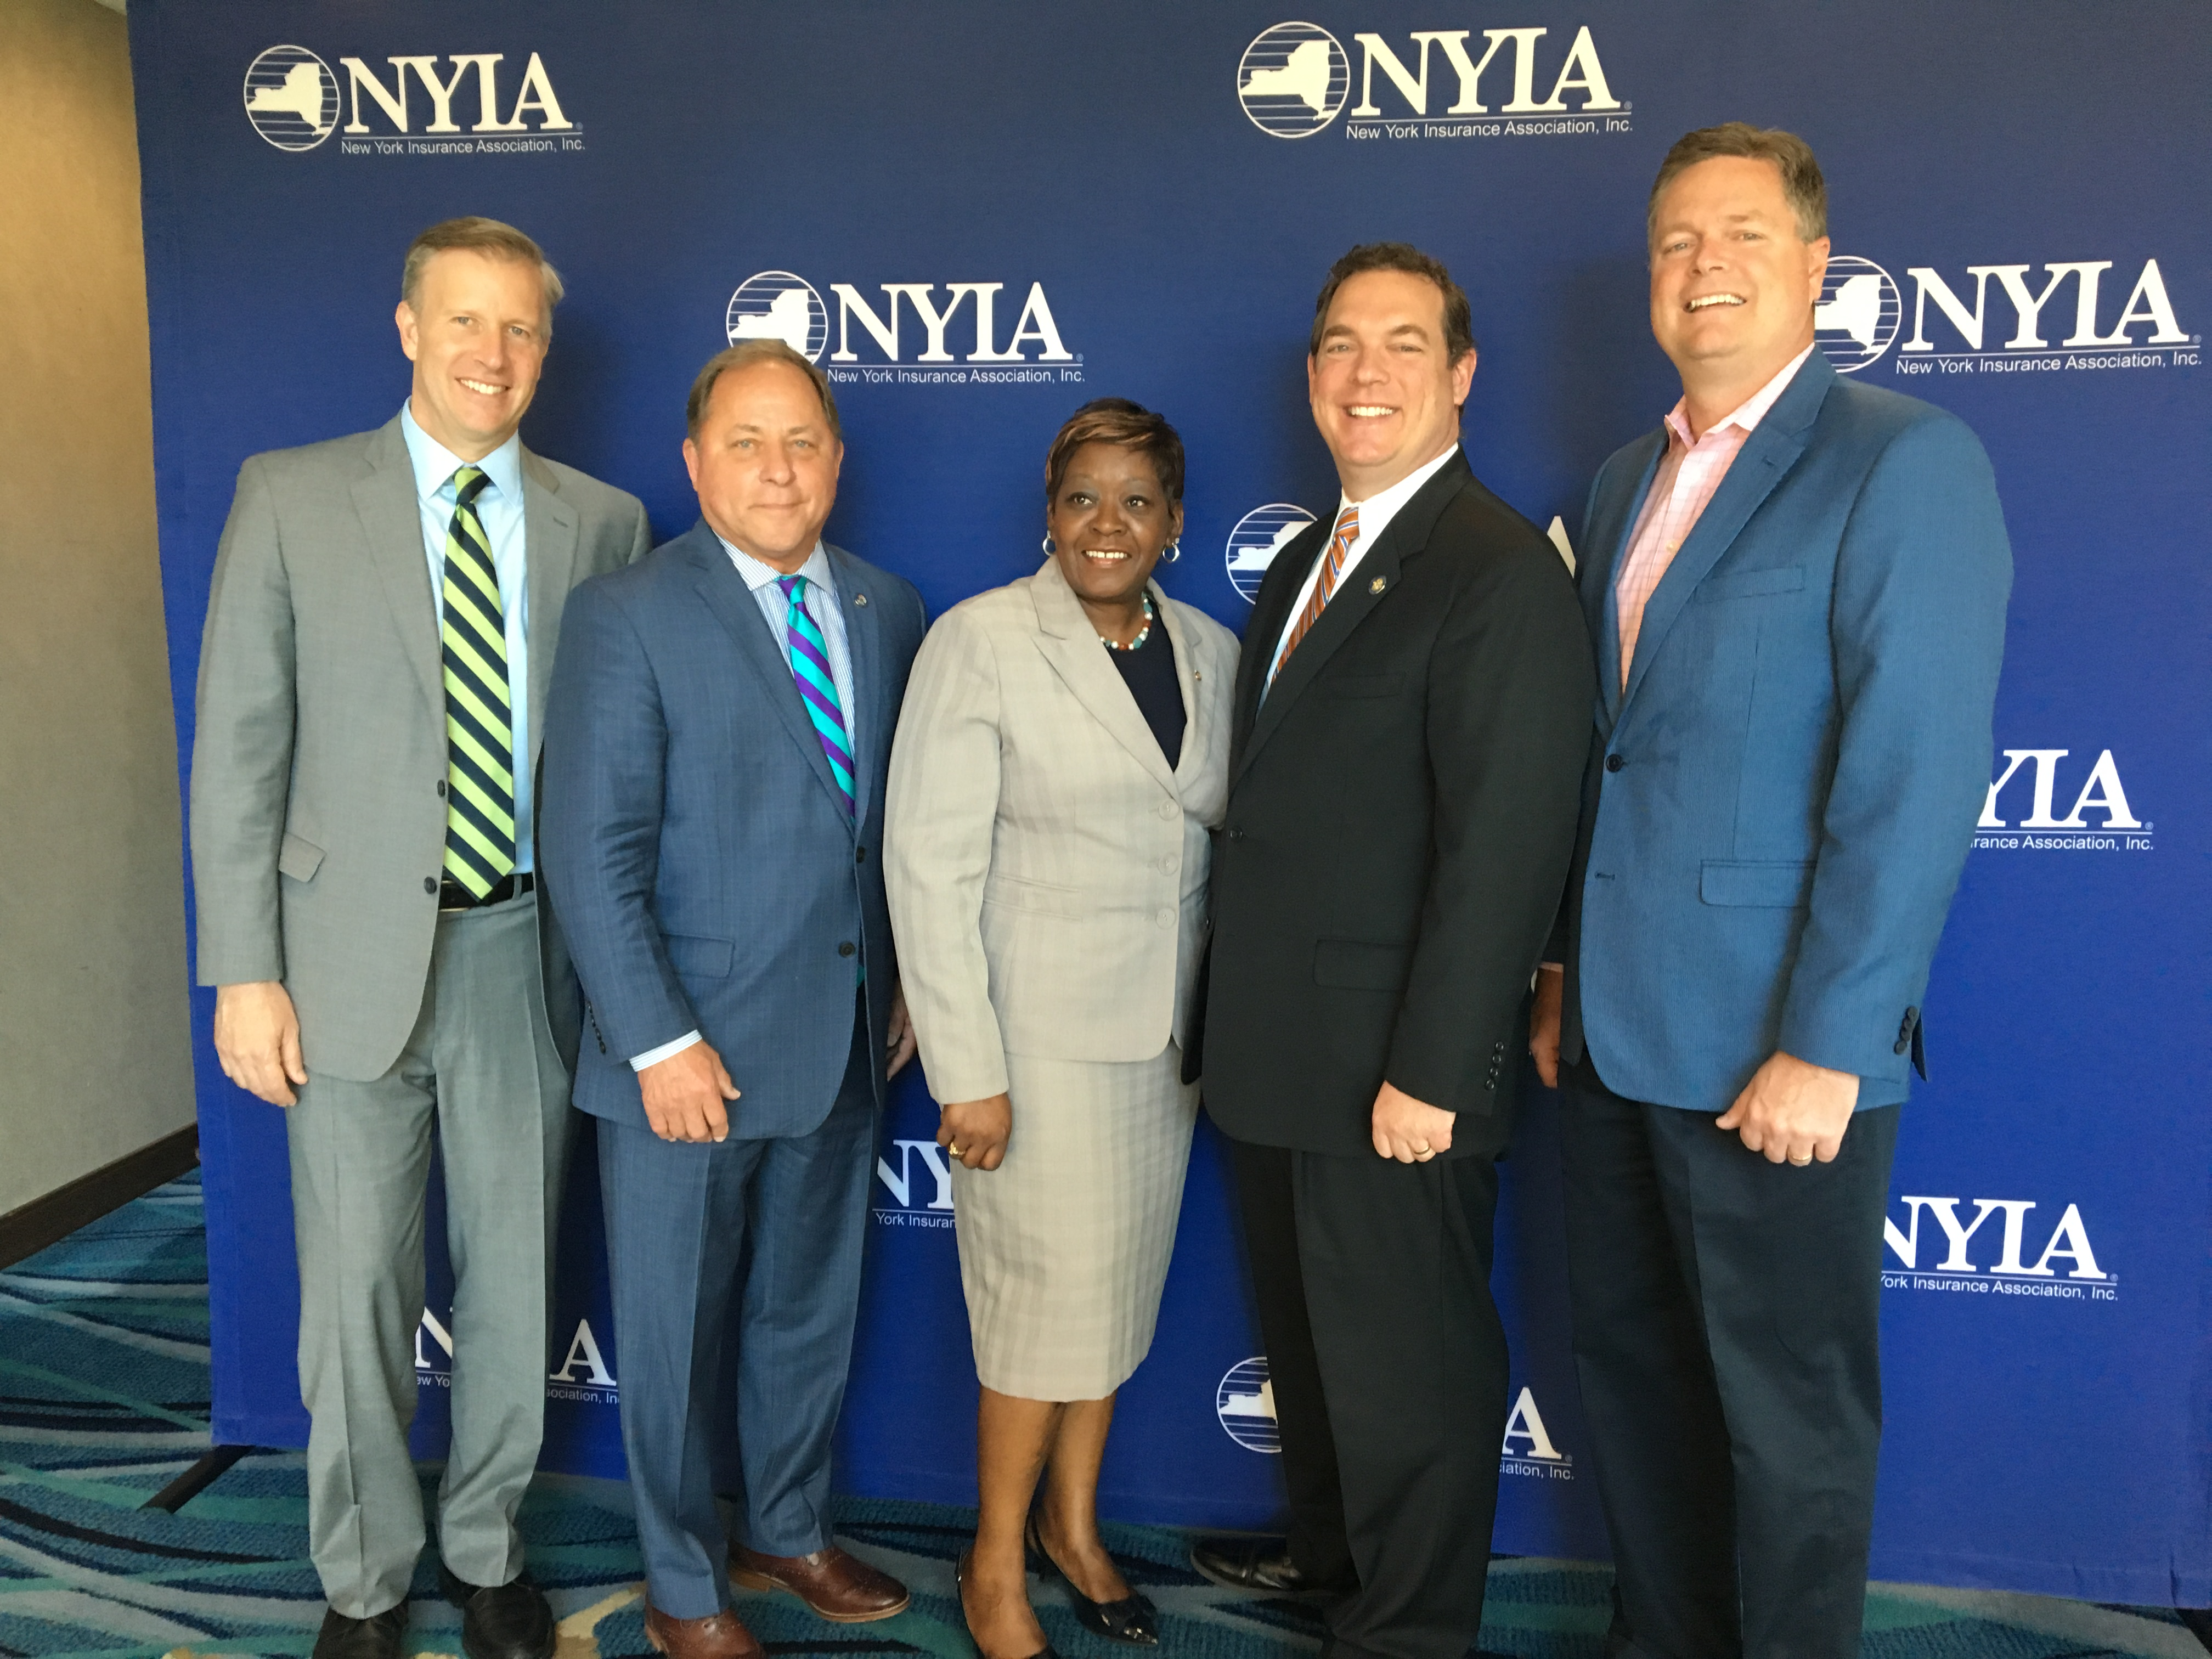 NYIA_conference_6-2-17.jpg